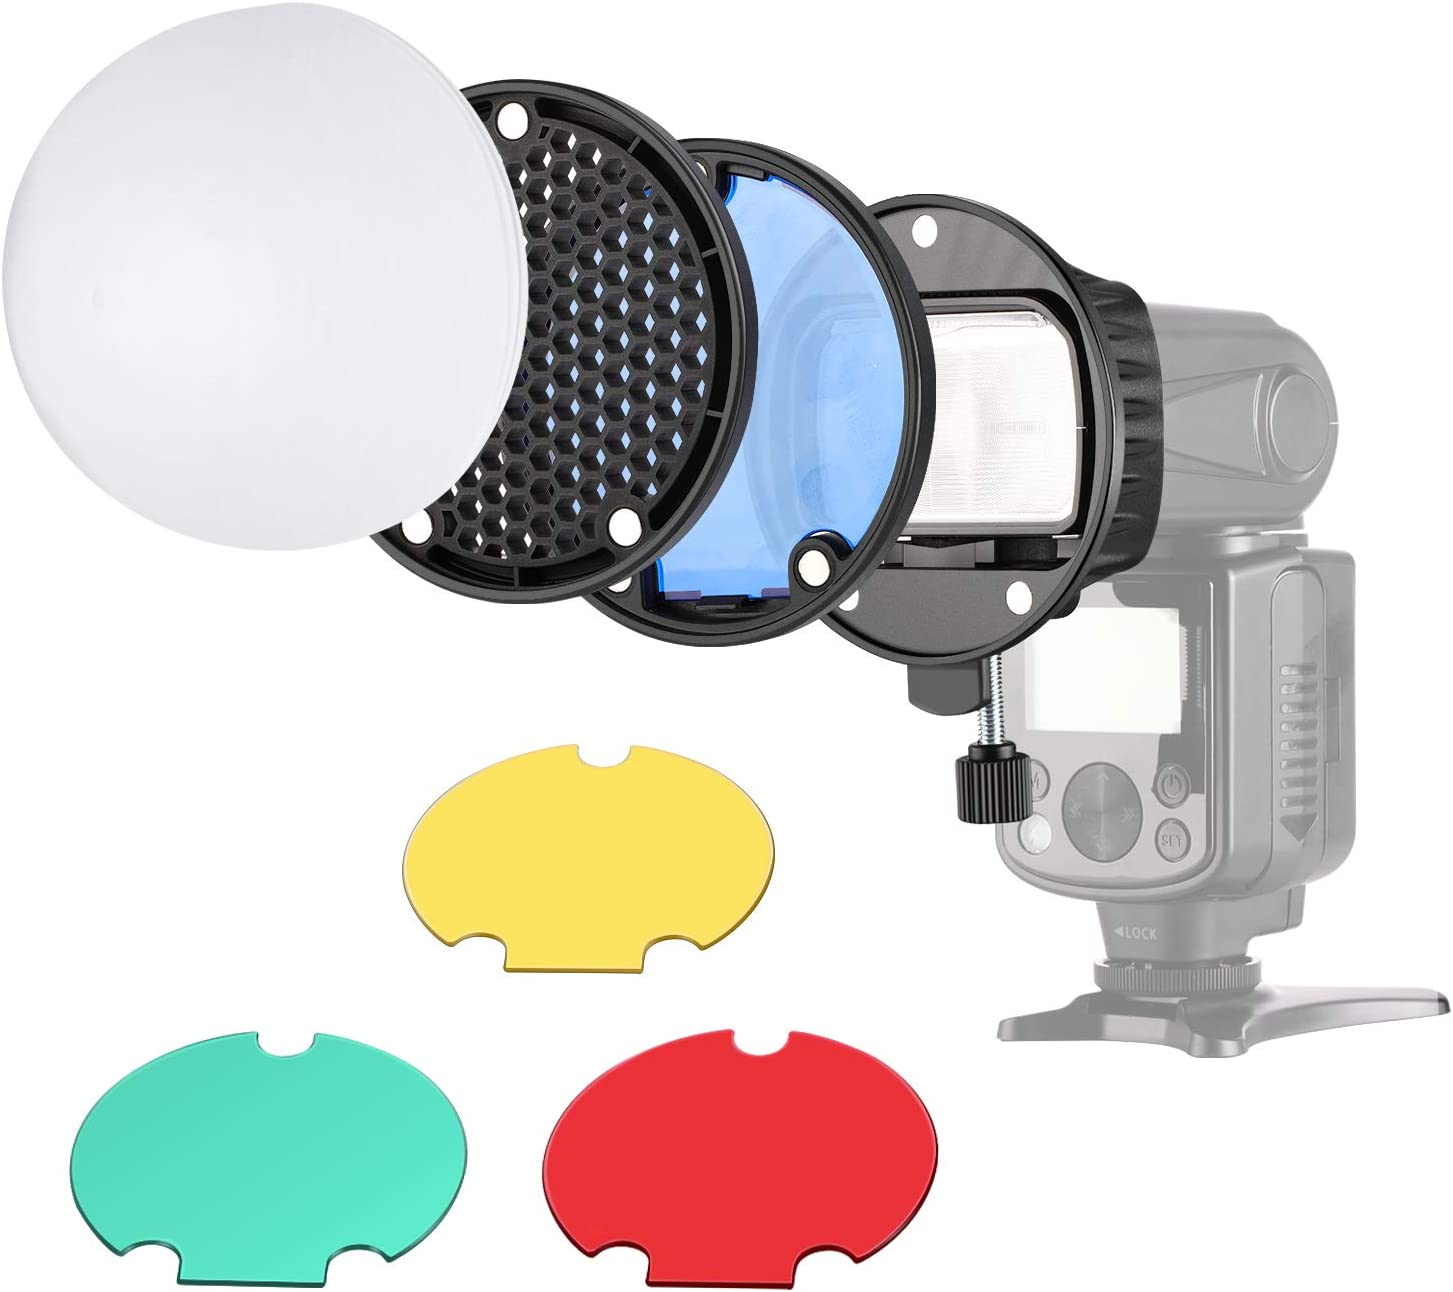 Neewer New product!! Max 66% OFF Camera Flash Filter+Honeycomb Kit:Bracket+Color Head